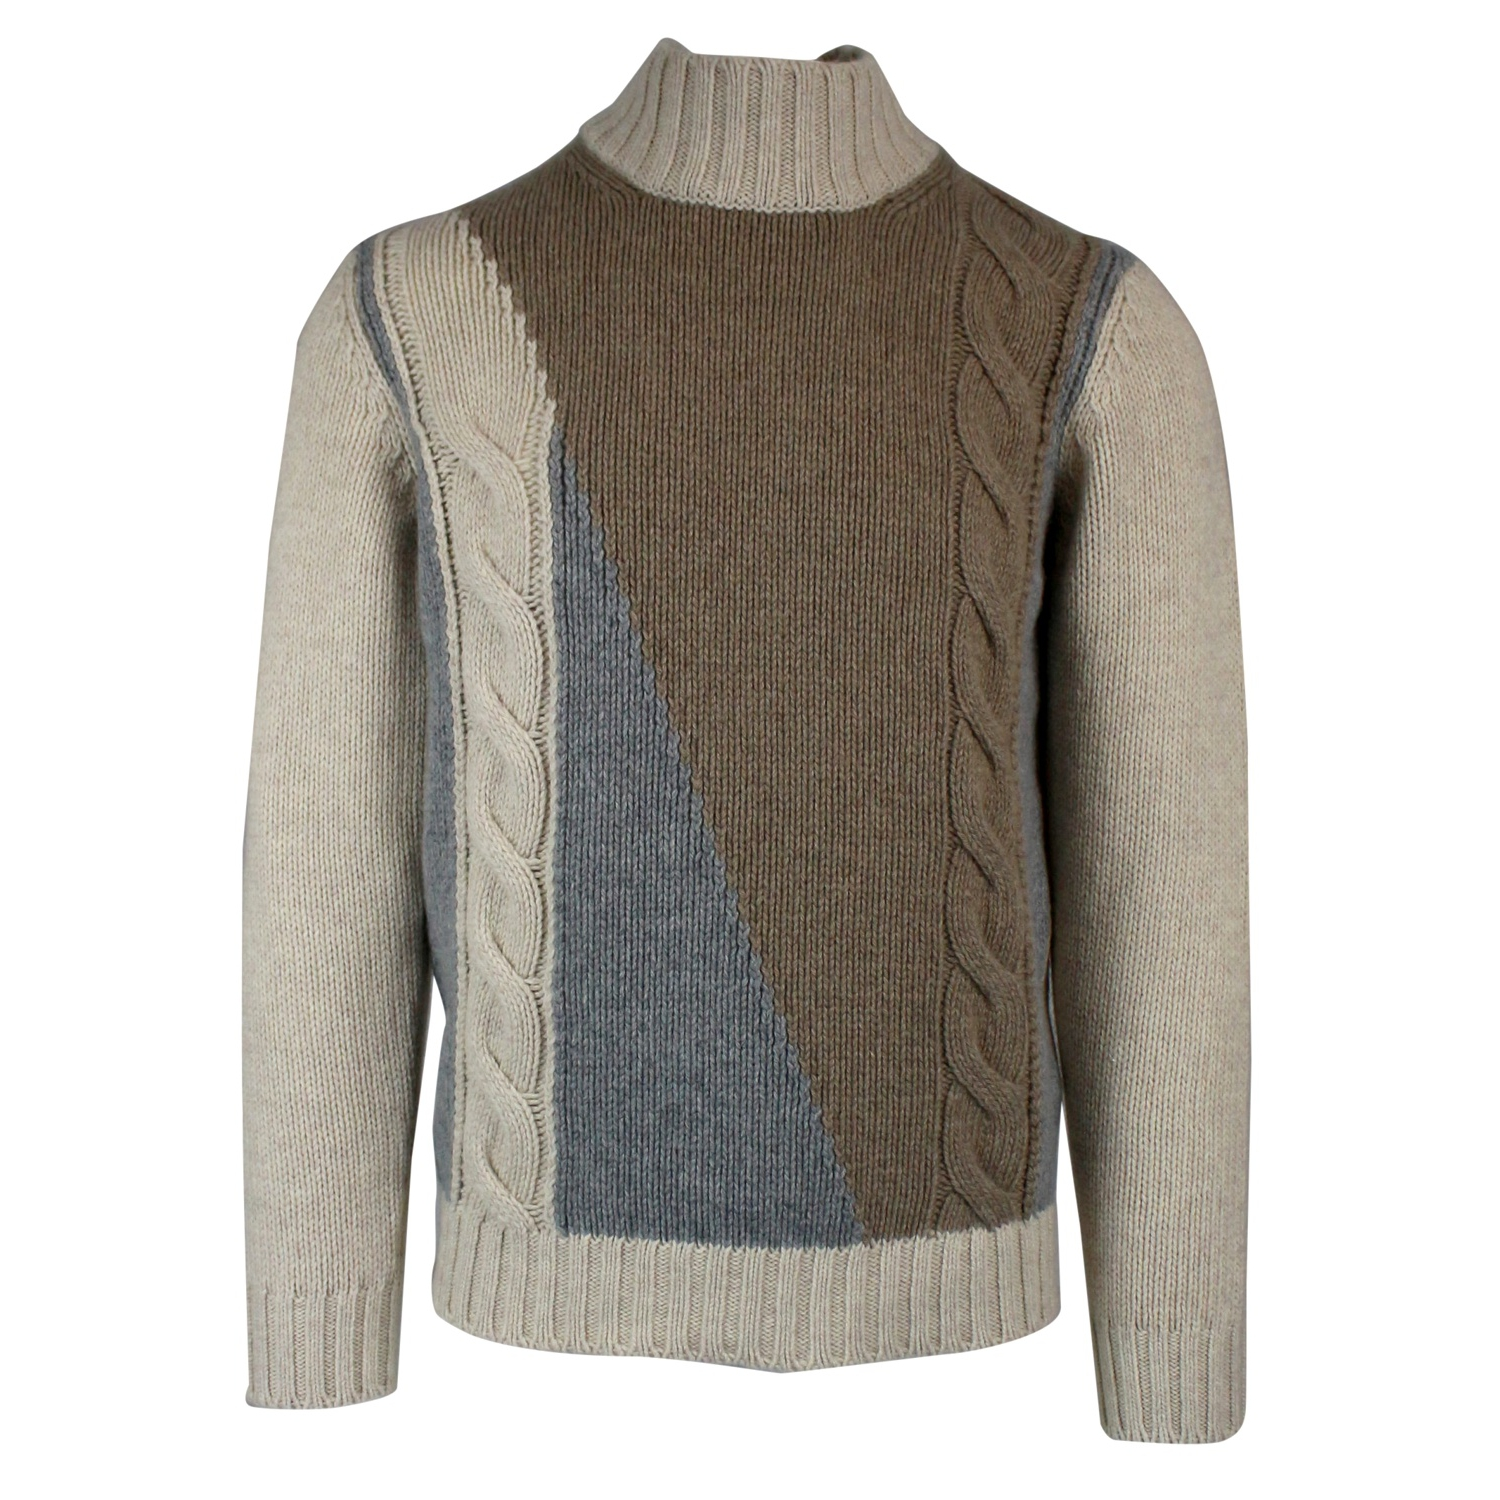 comprare on line c1cd6 74016 Turtleneck sweater